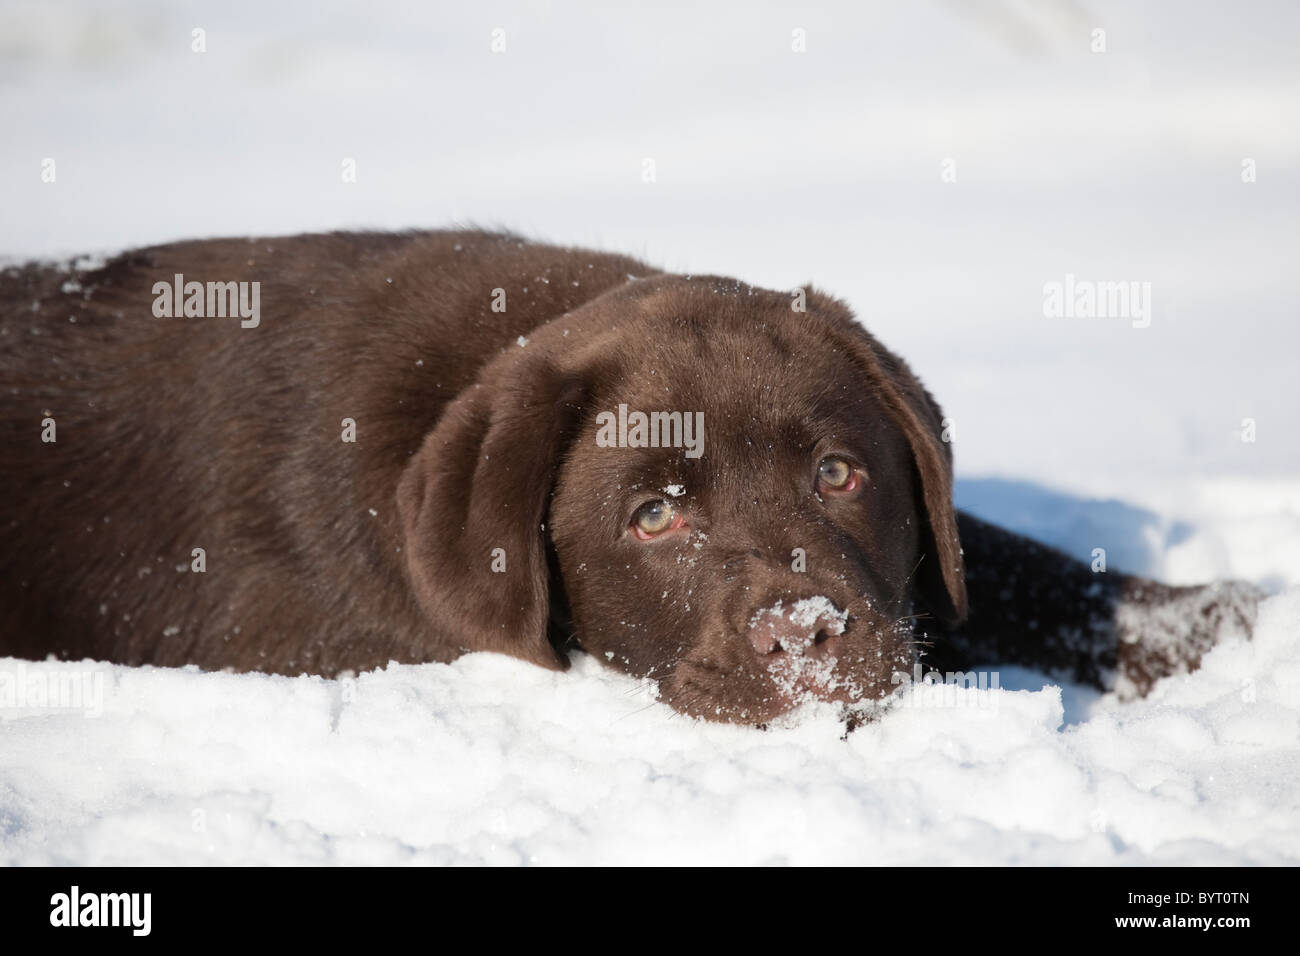 Labrador Retriever puppy in snow - Stock Image